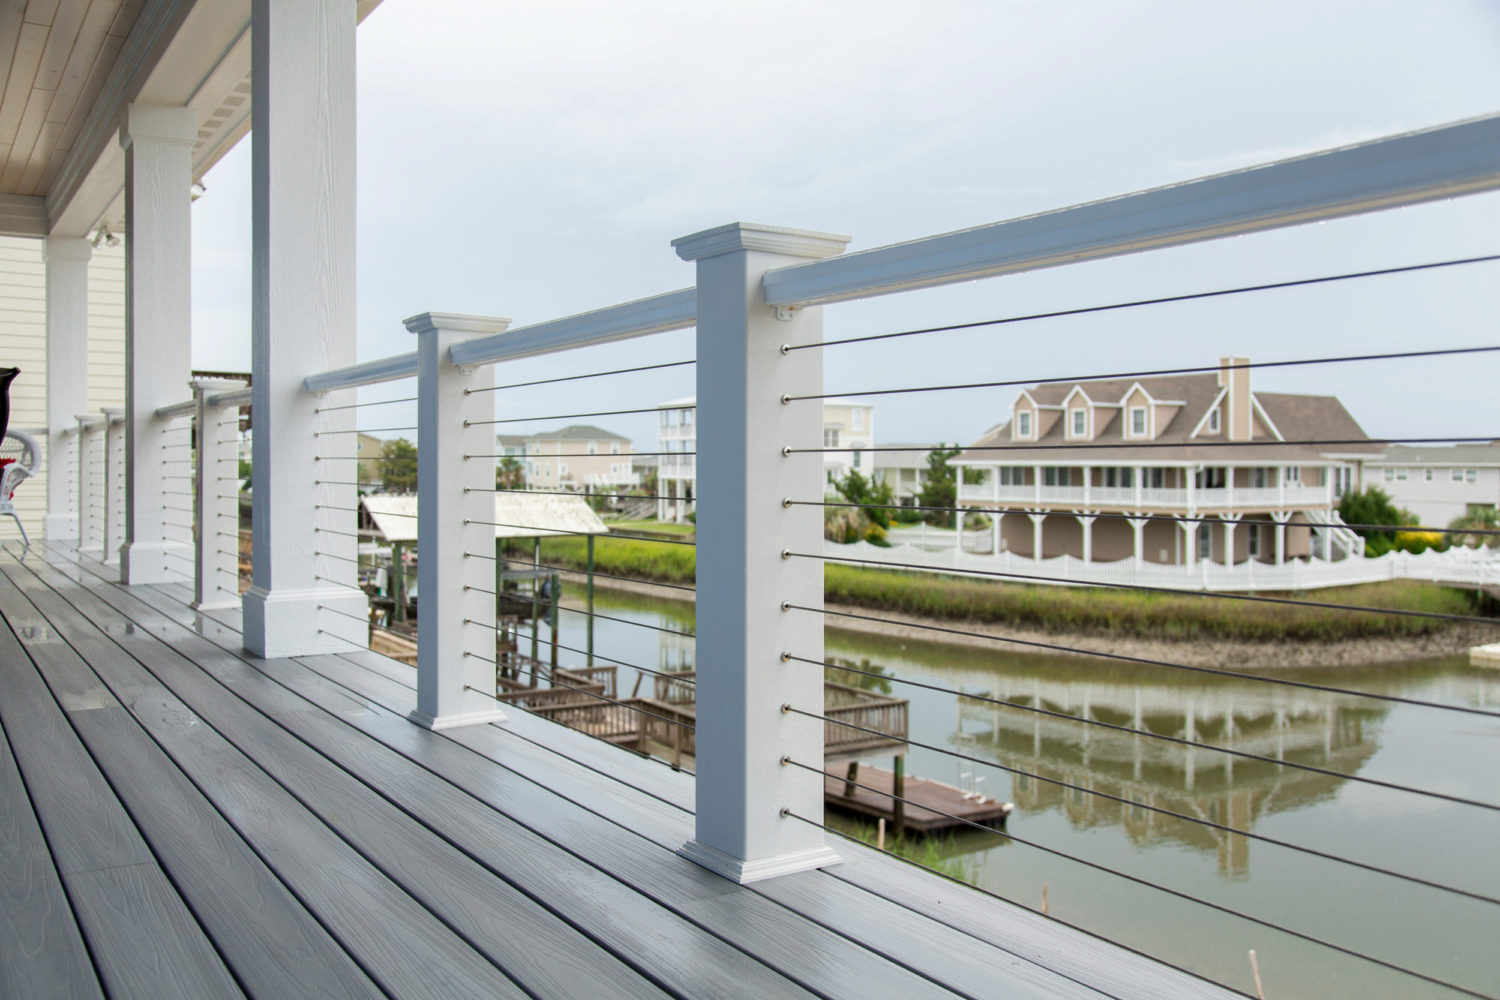 Picture of: Cable Railing Systems Railing For Decks Stairs Viewrail